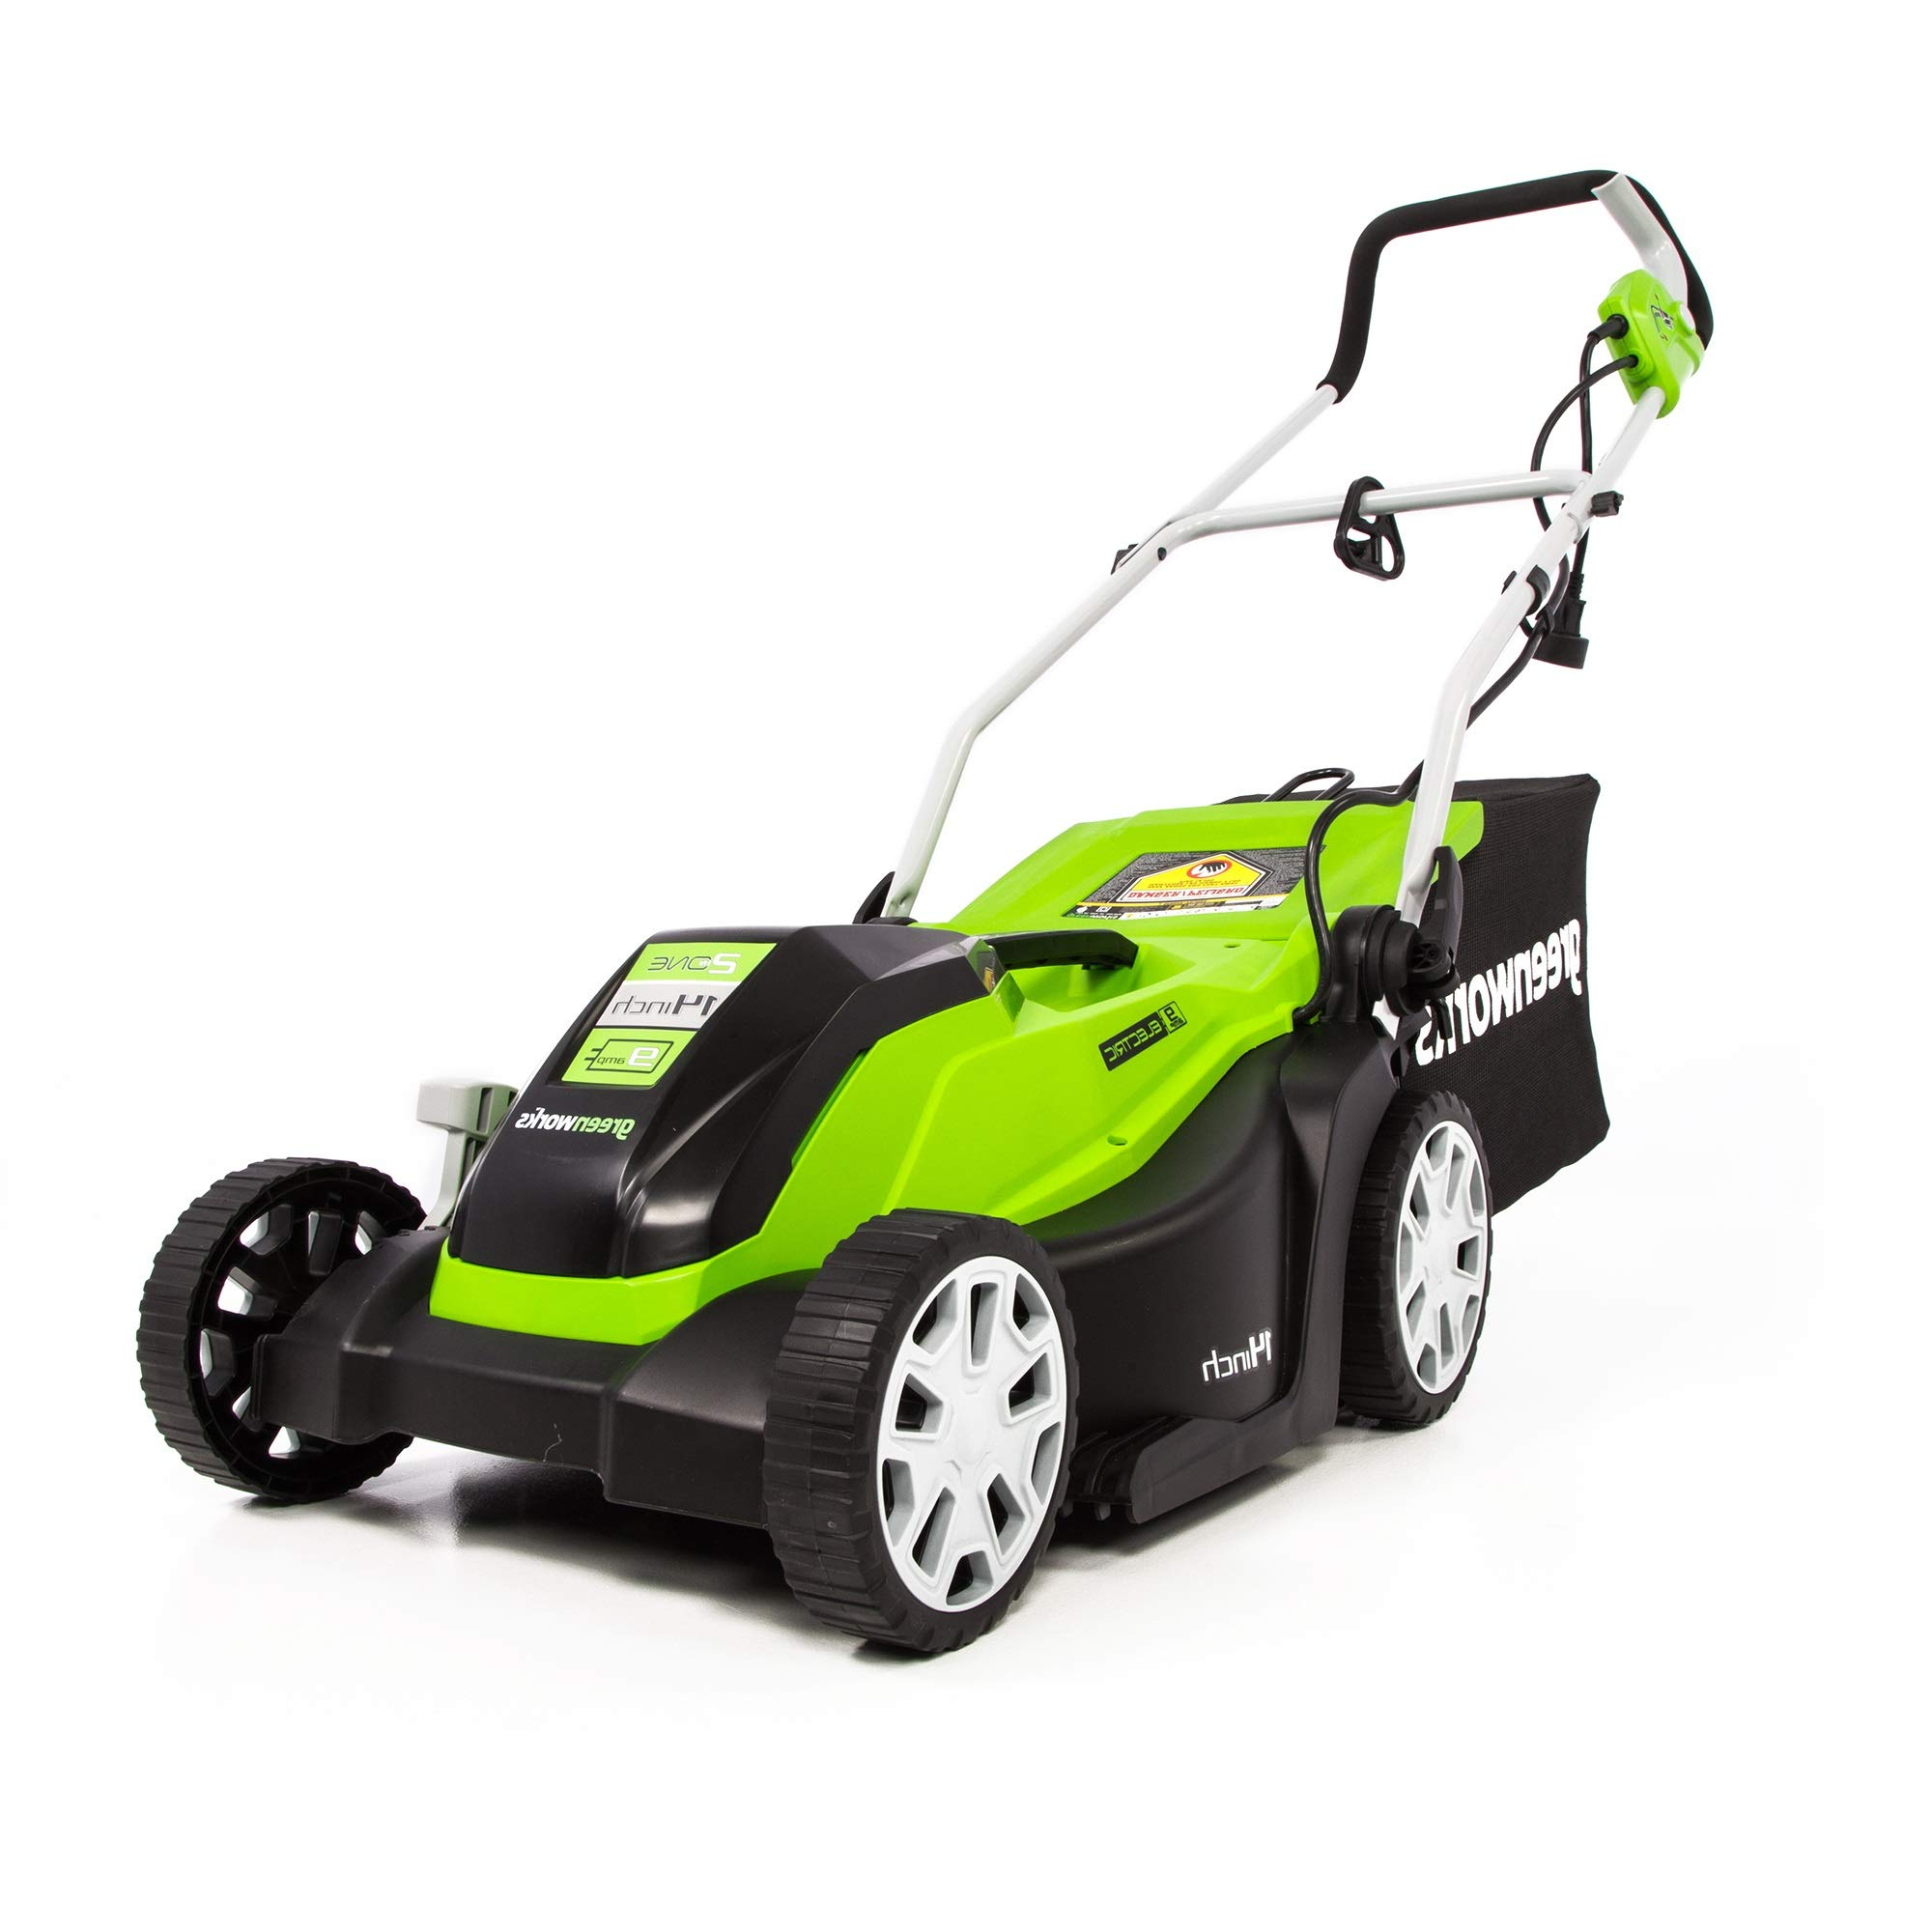 Greenworks 14-Inch 9 Amp Corded Electric Lawn Mower MO09B01 by Greenworks